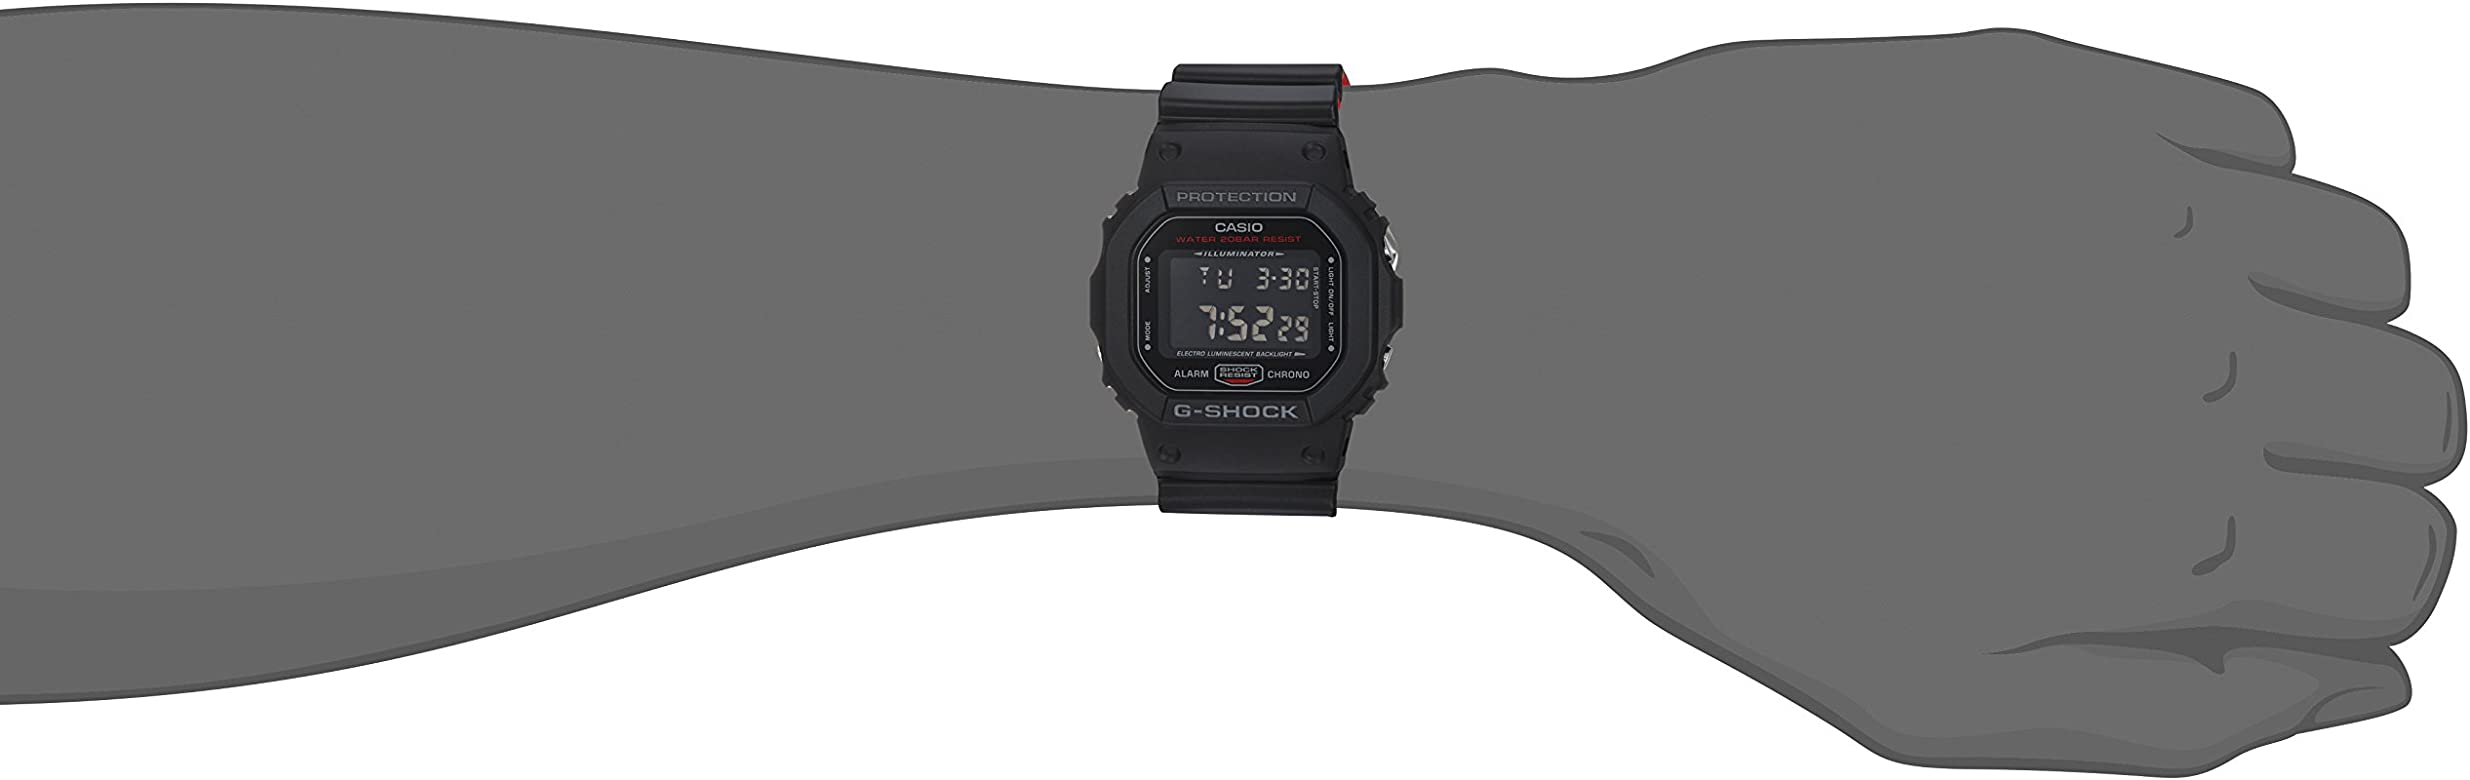 Mens G Shock Quartz Watch with Resin Strap, Black, 25 (Model: DW-5600HR-1CR)